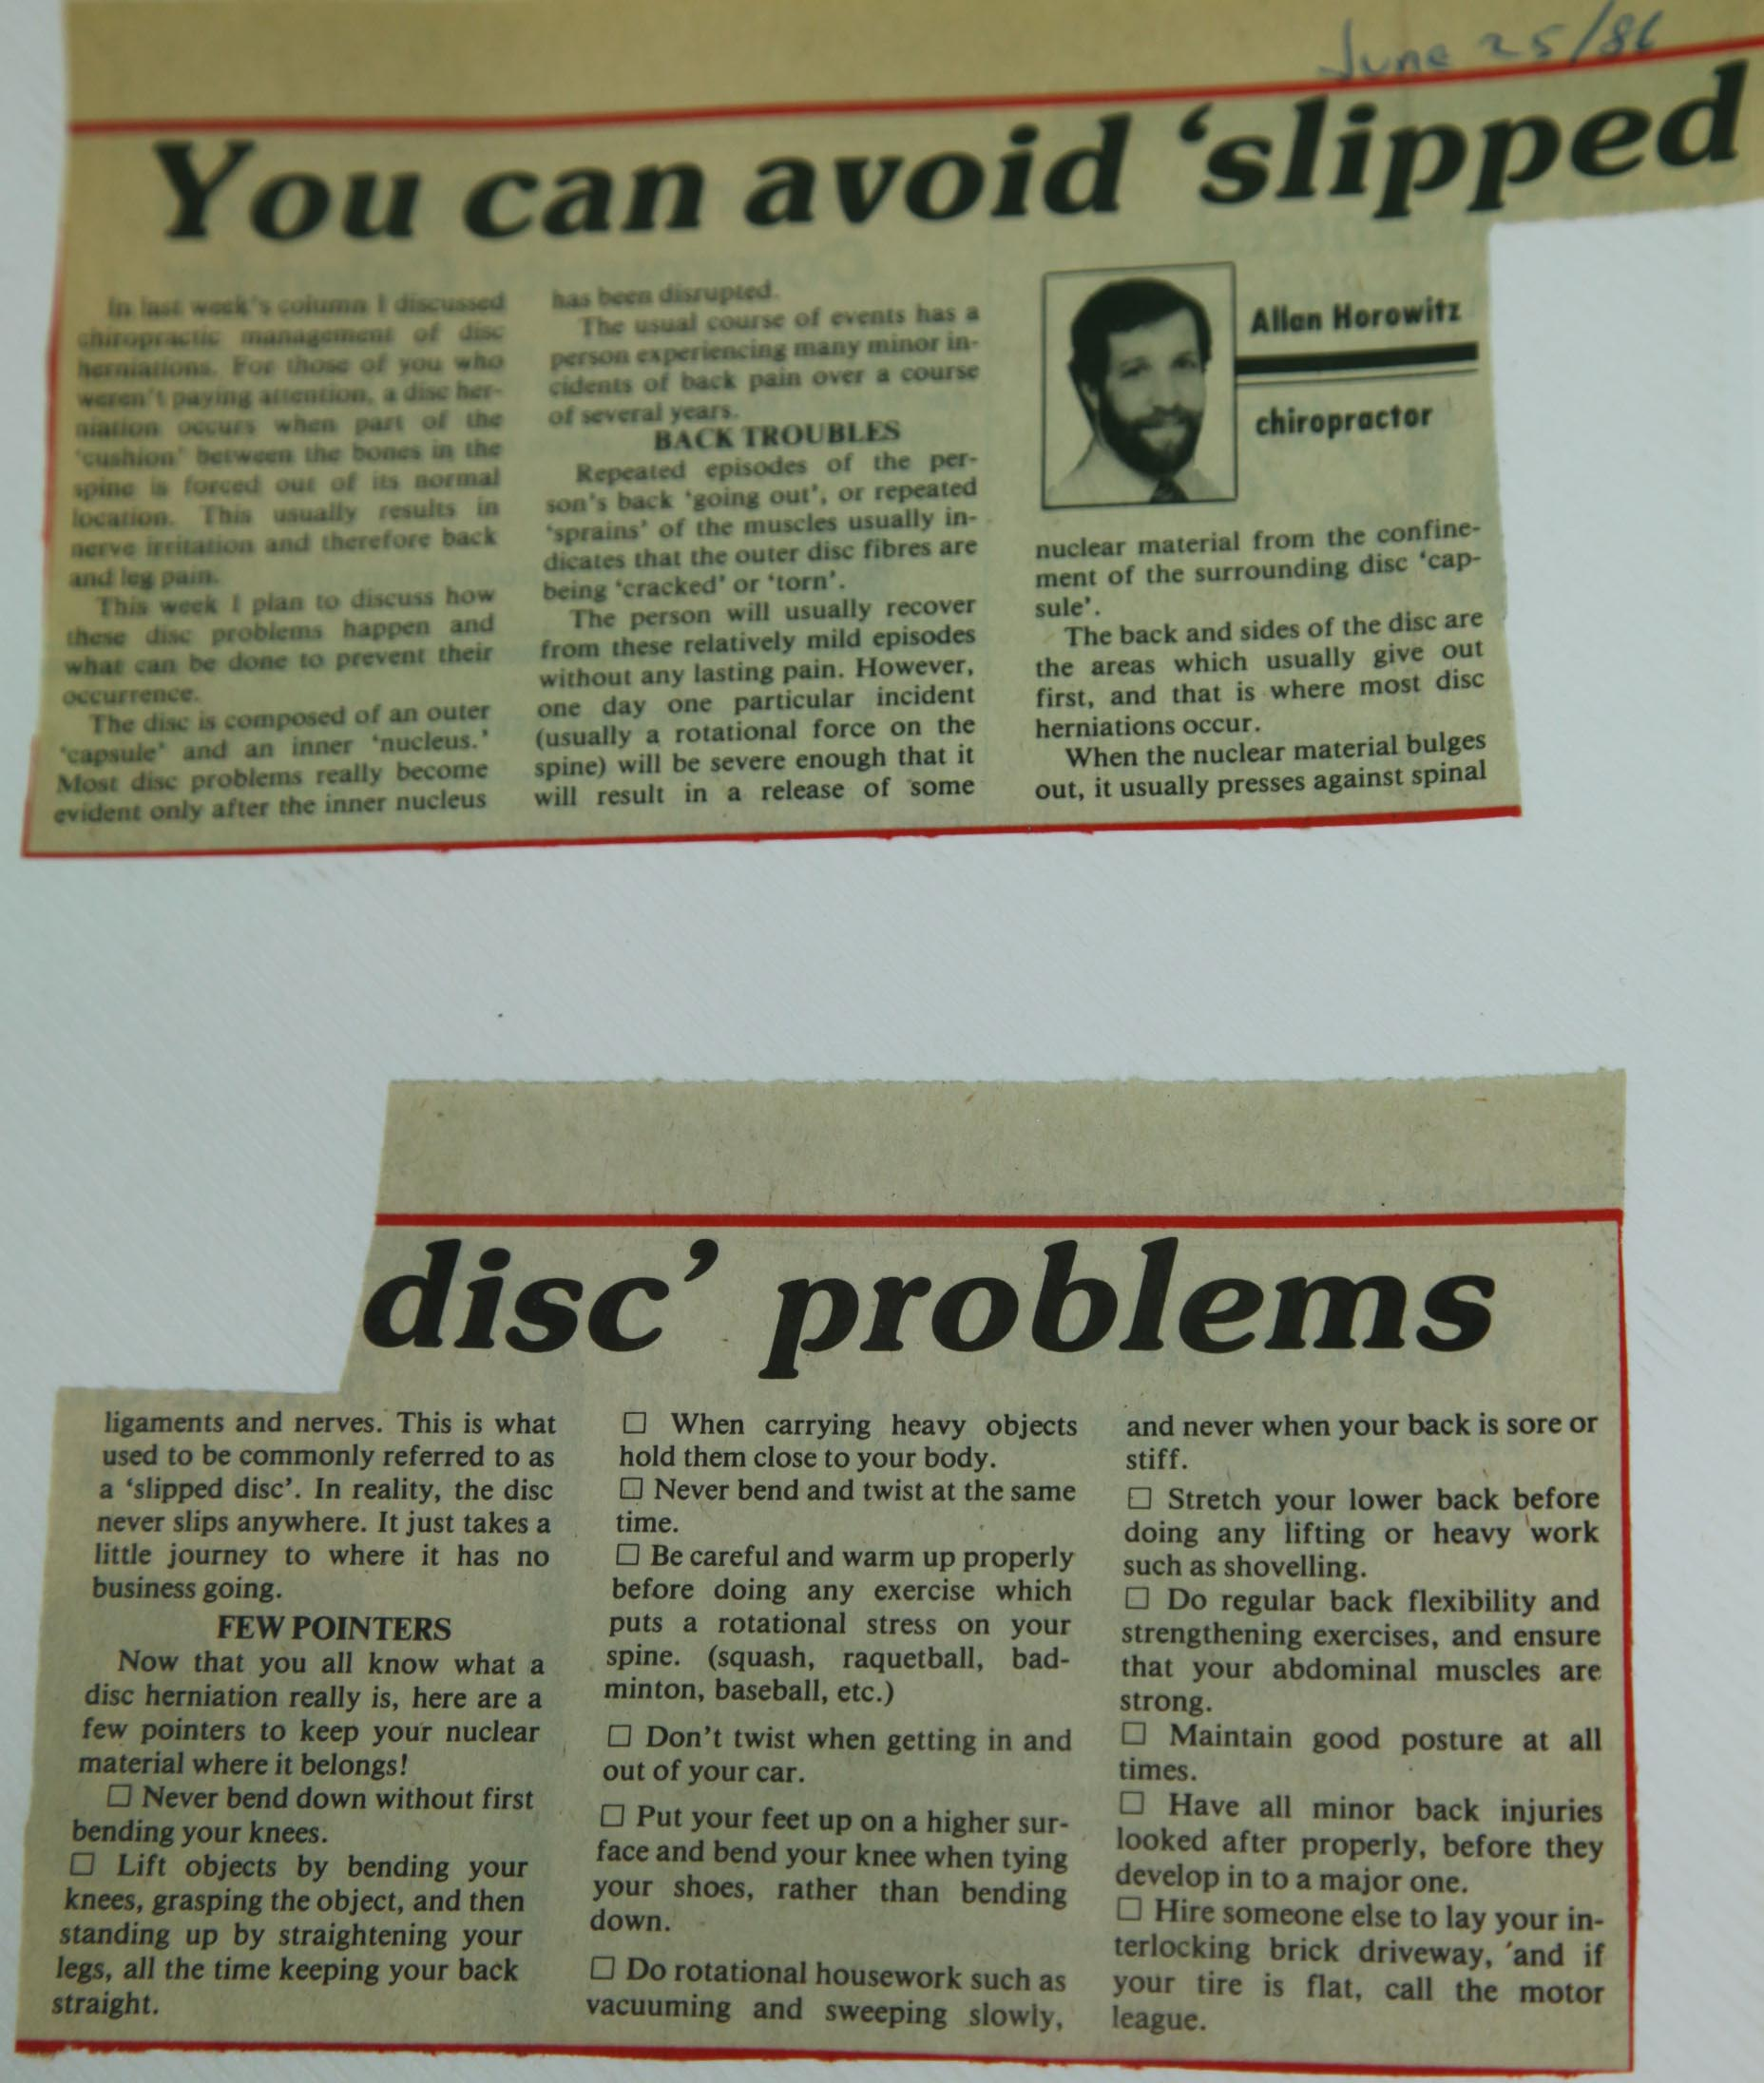 You Can Avoid Slipped Disc Problems Dr Allan Horowitz